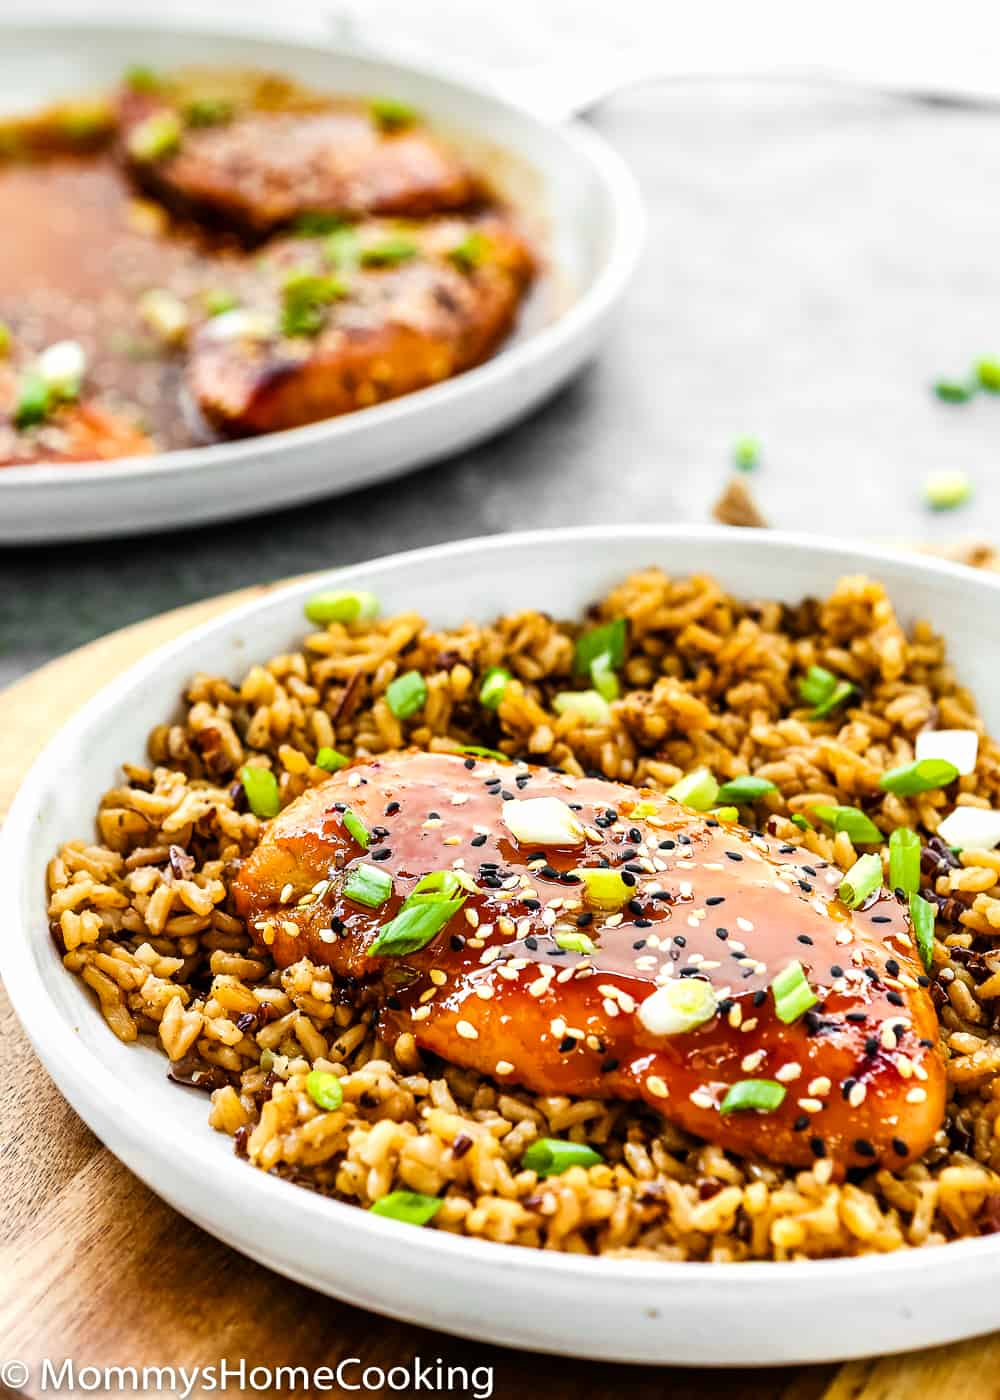 Easy Asian-Style Chicken Breast in a plate with rice